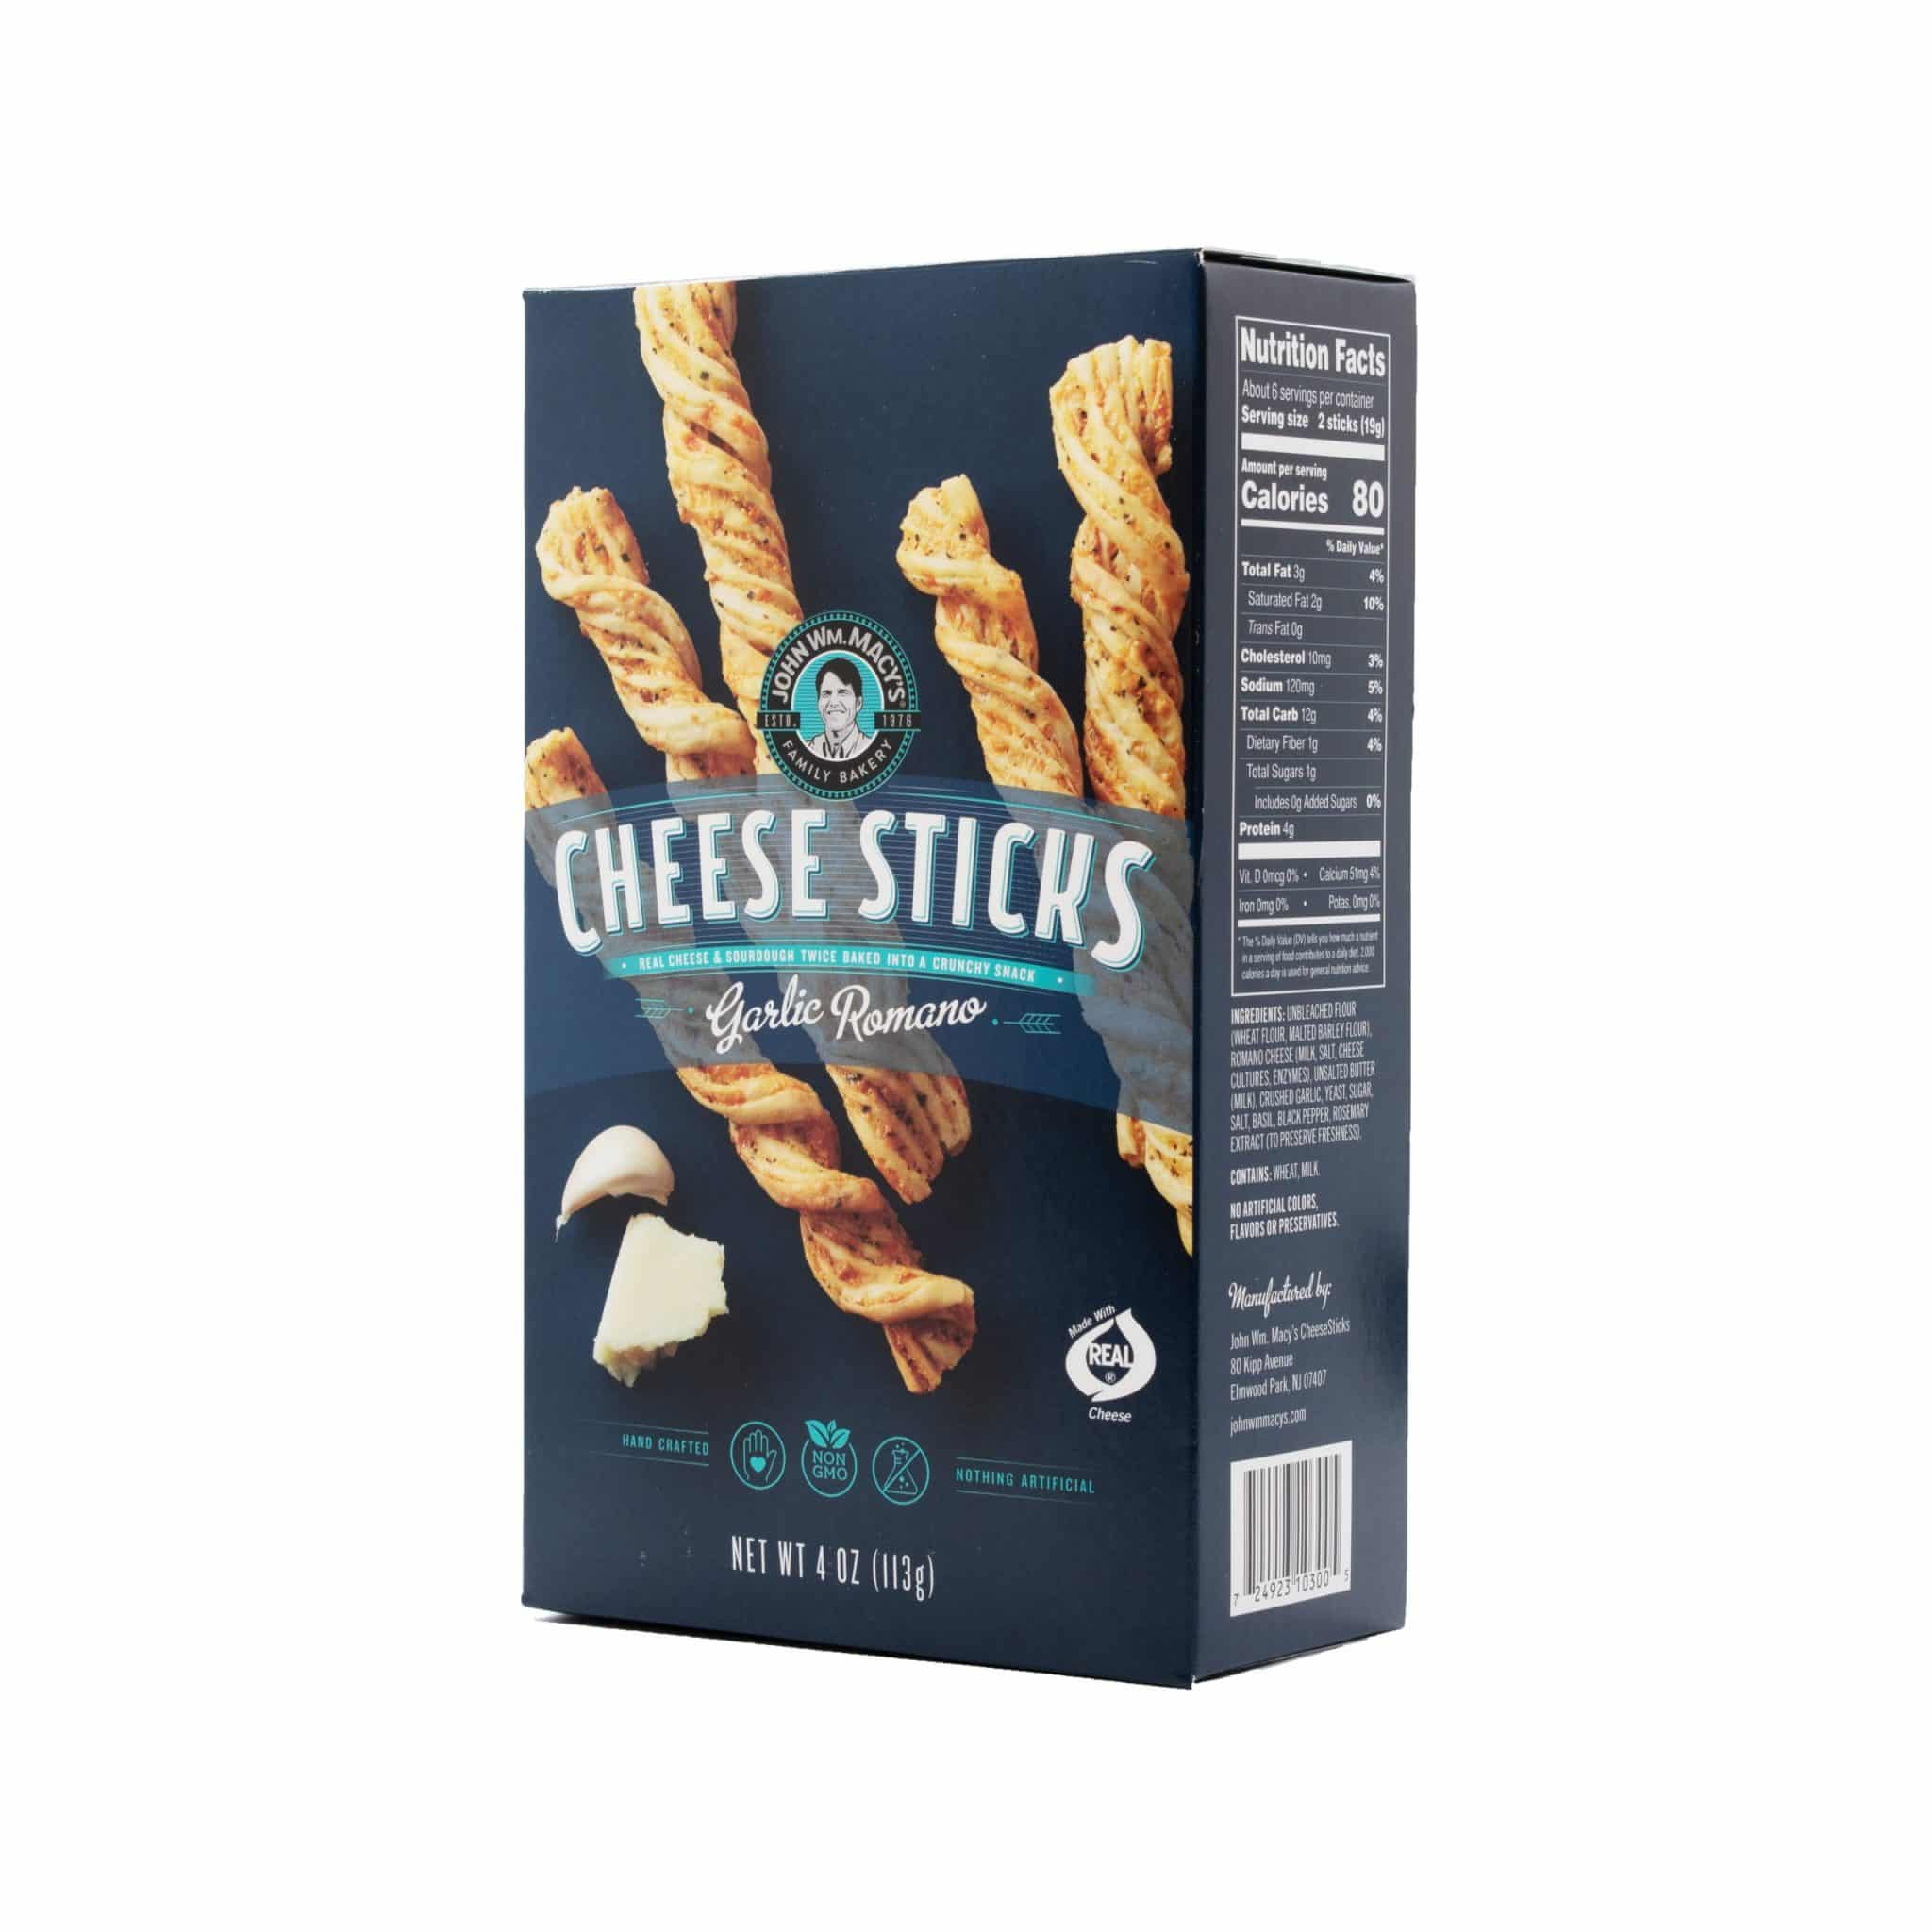 John Wm. Macy's Cheese Sticks